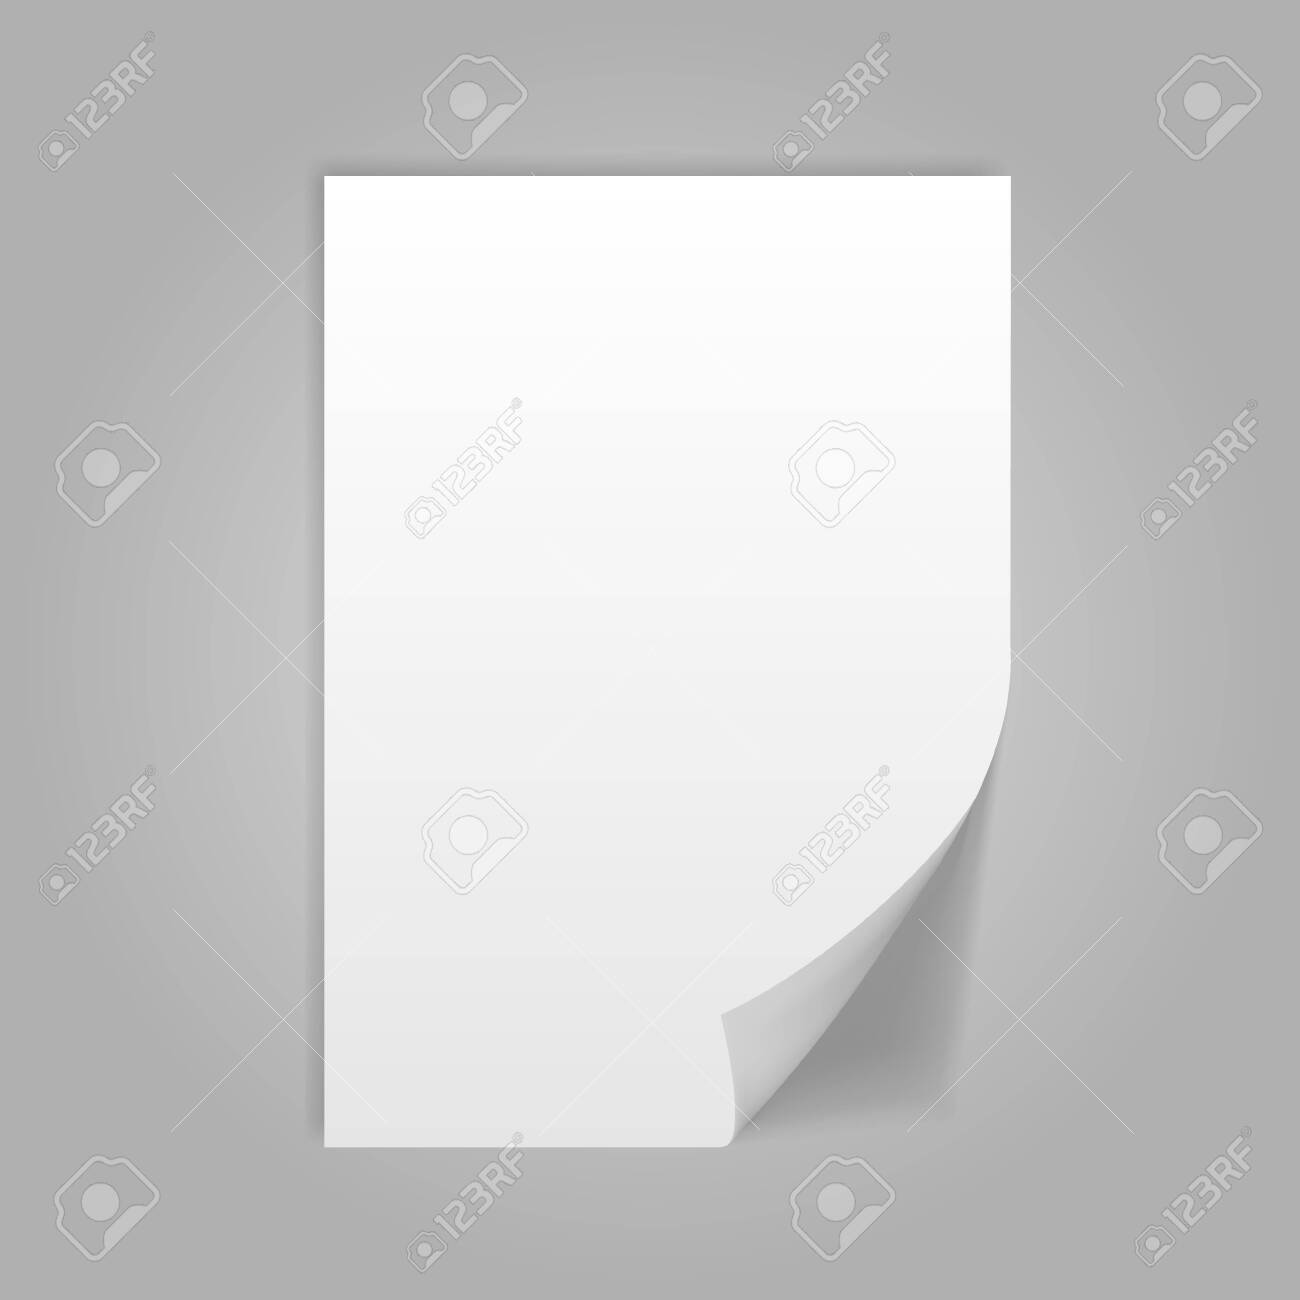 Illustration of A4 isolated on grey background. - 134540771